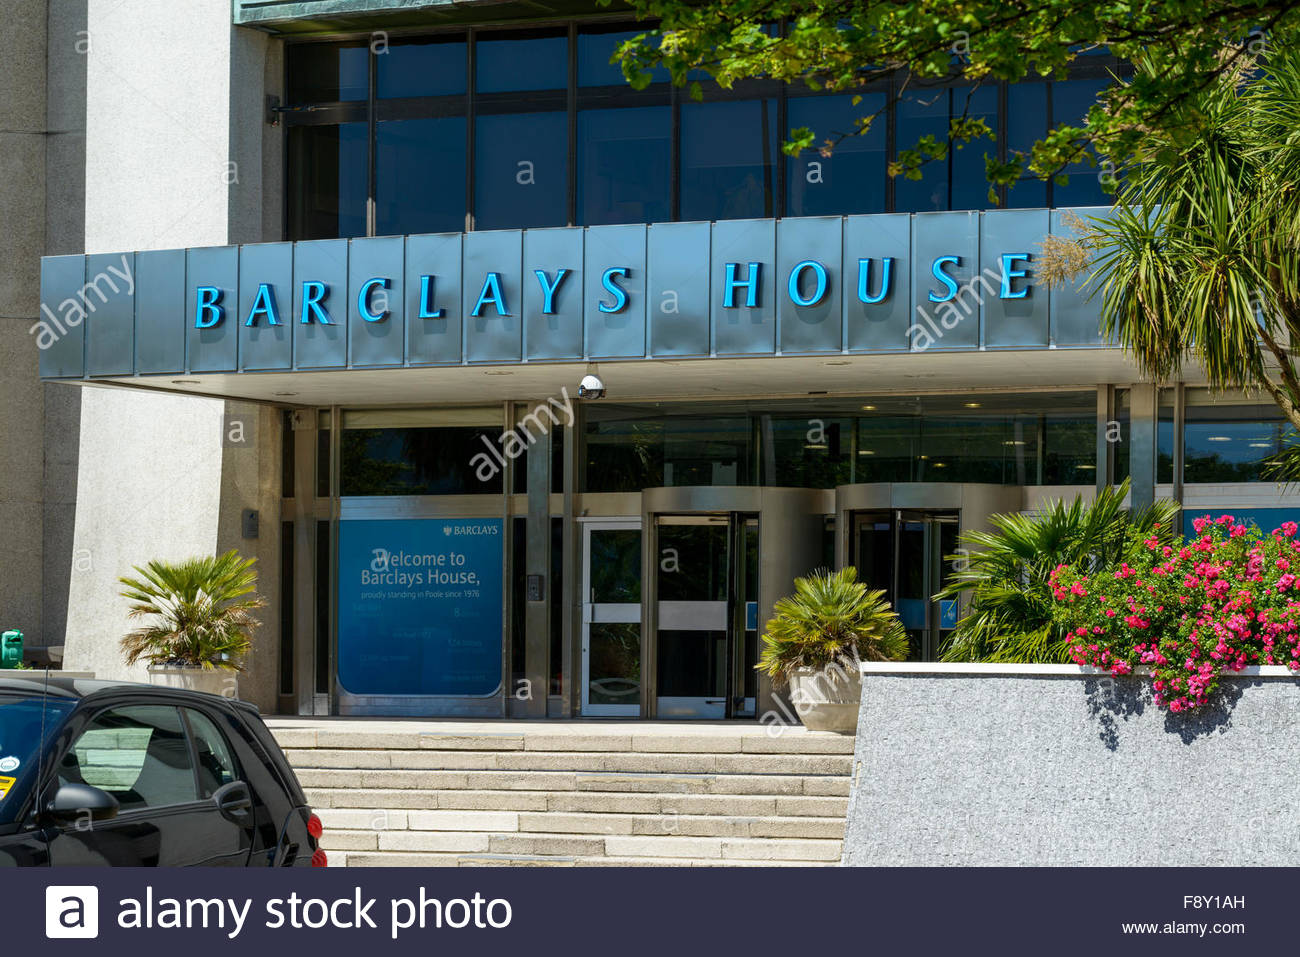 Barclays House, banks offices, Poole, Dorset, England, UK - Stock Image